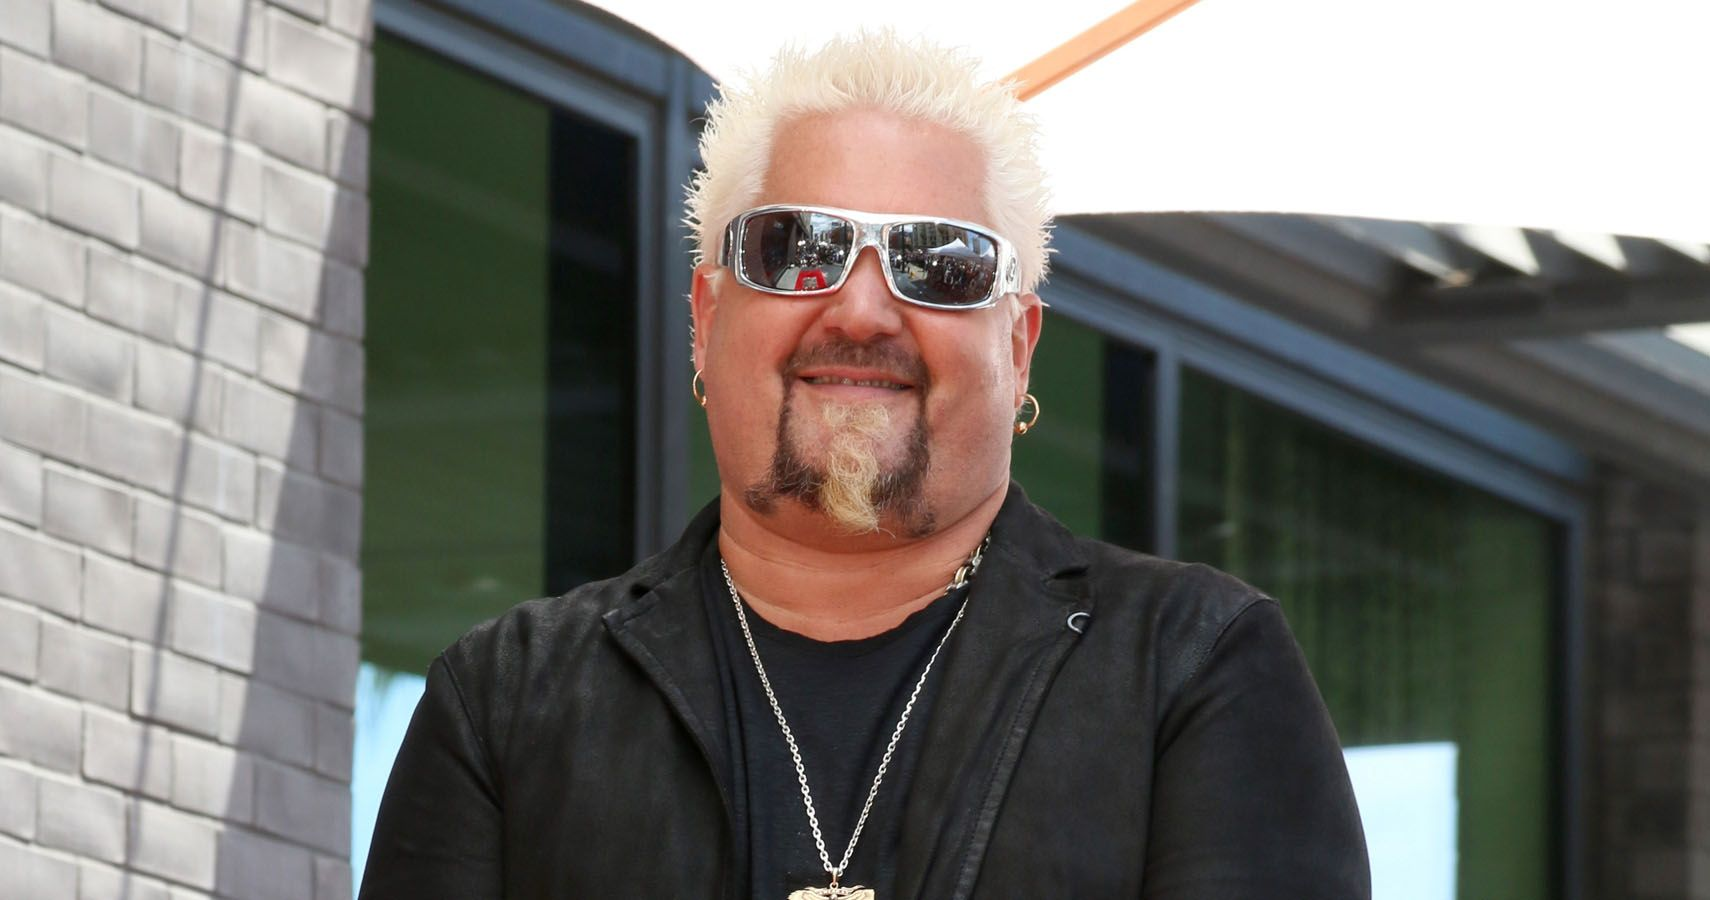 Guy Fieri Gets $50 Million Raise With New Contract, Now One Of The Highest Paid TV Hosts